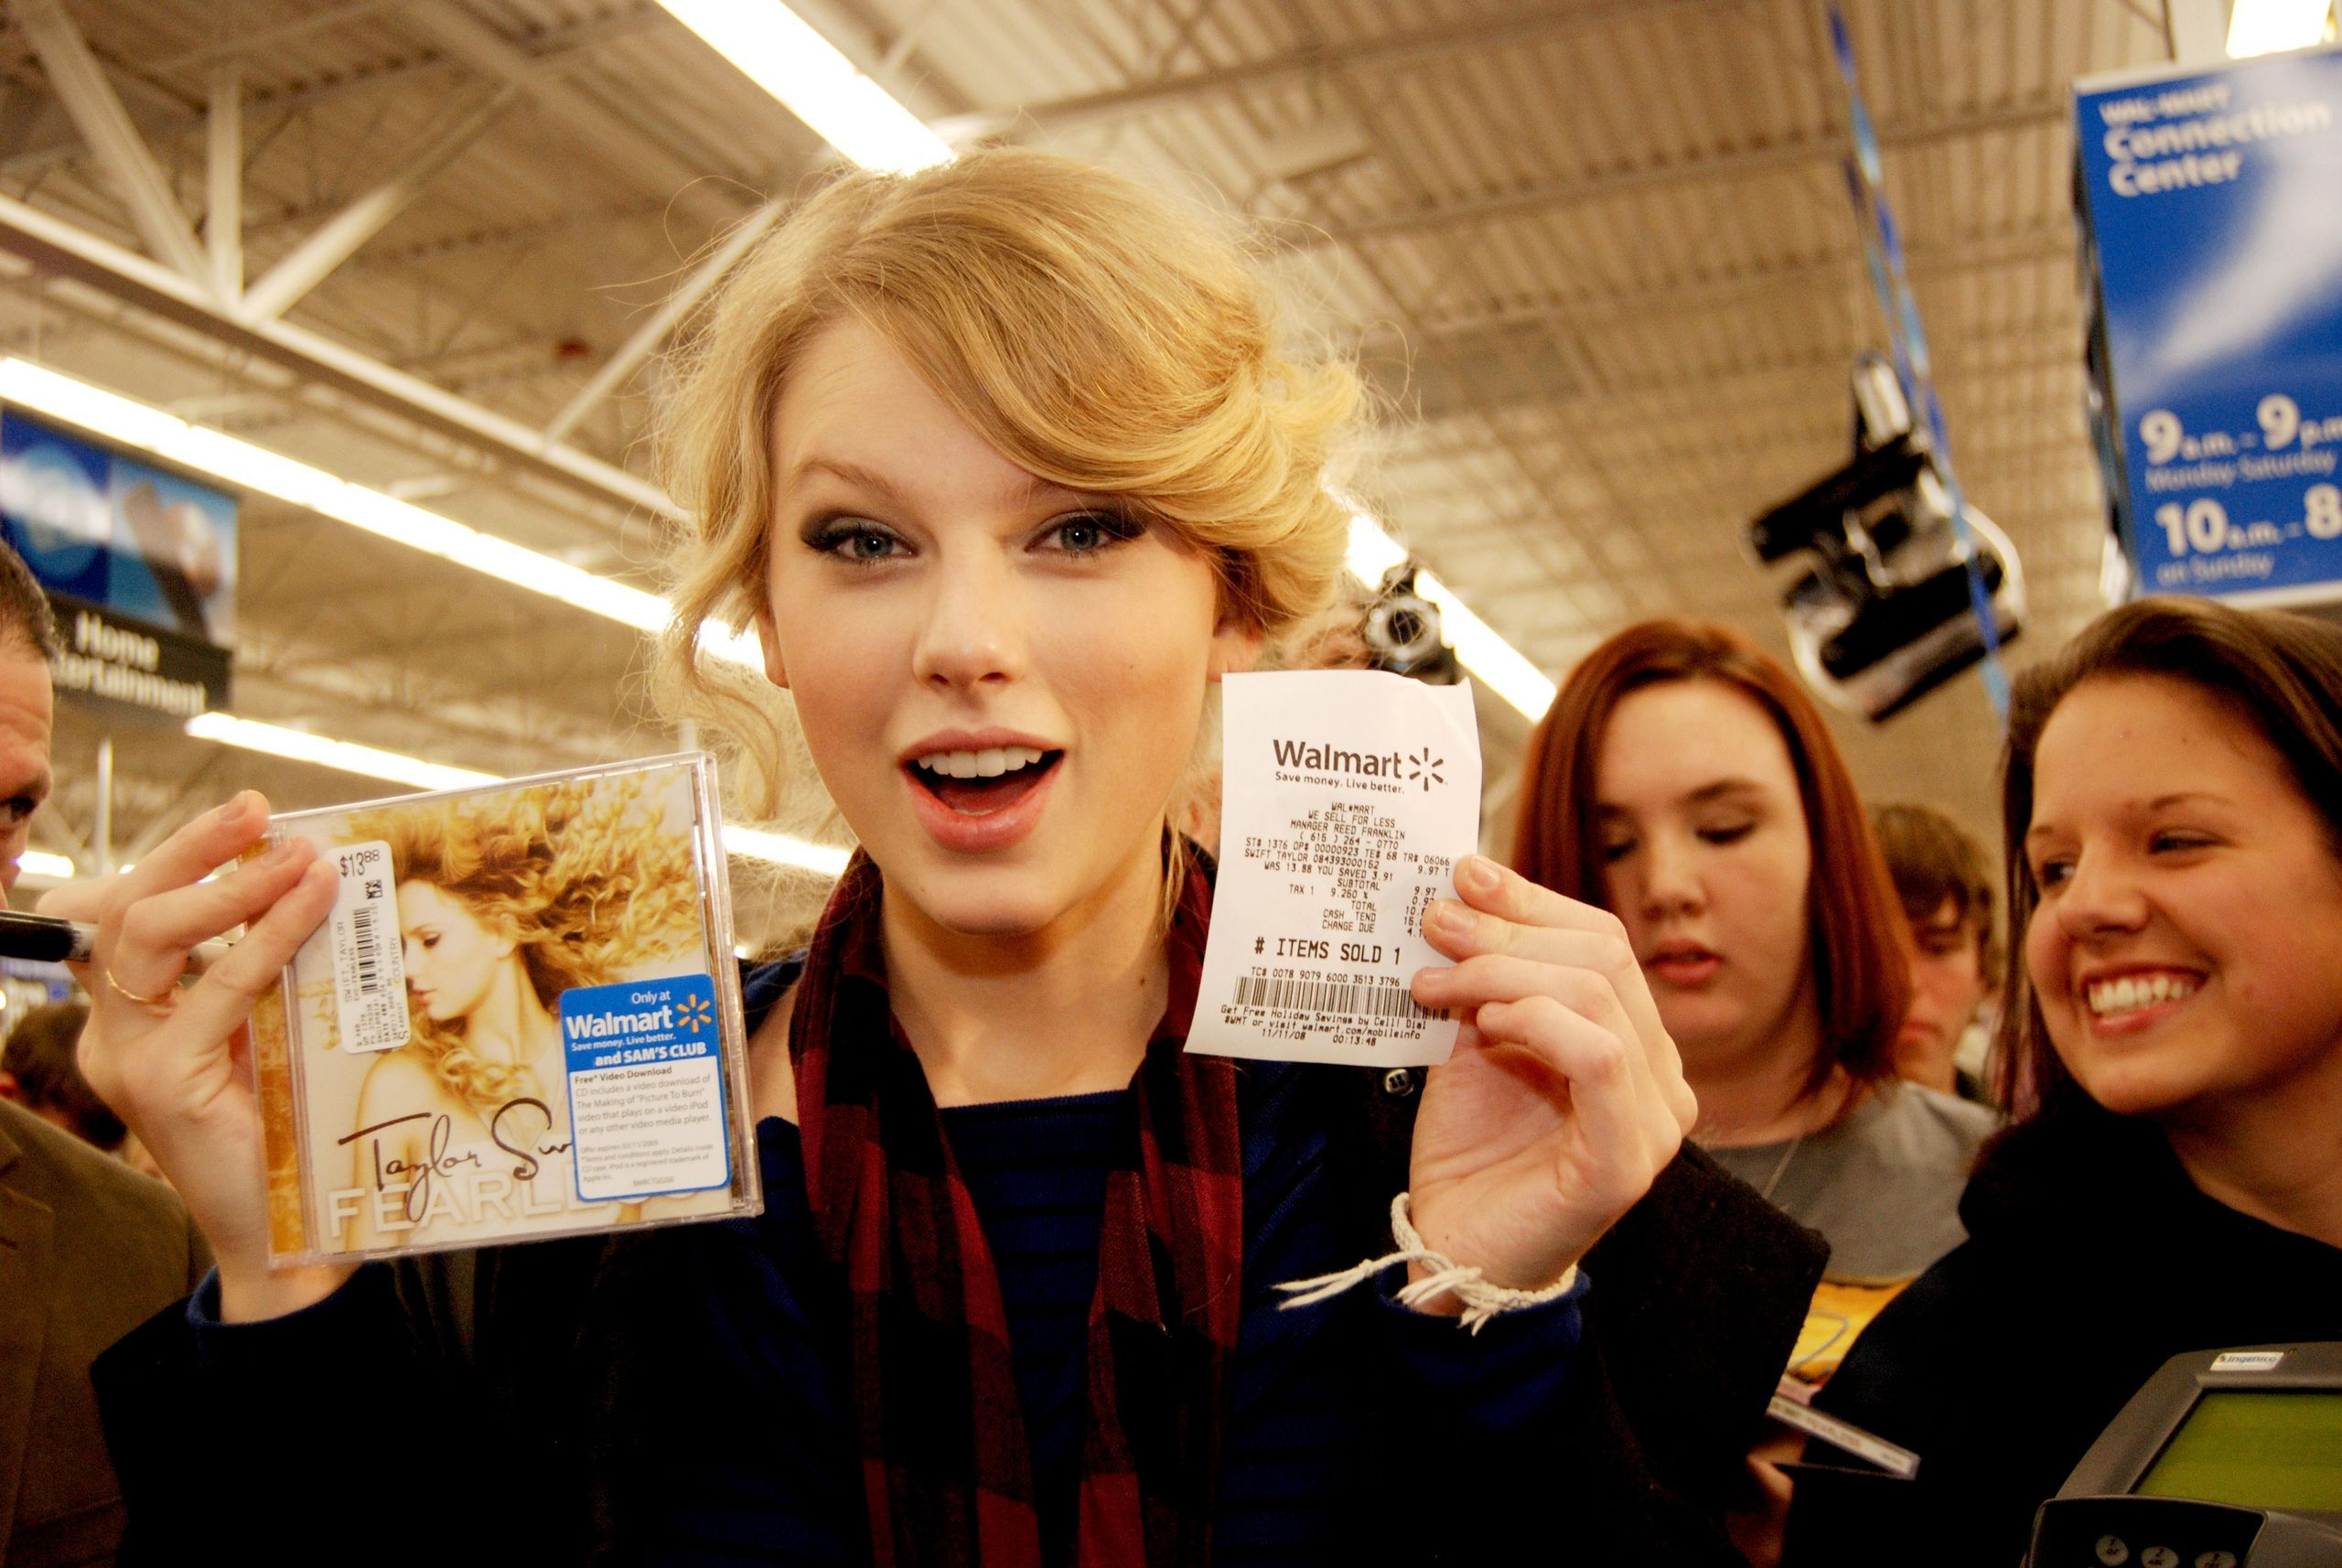 Taylor Buying her Fearless CD :)